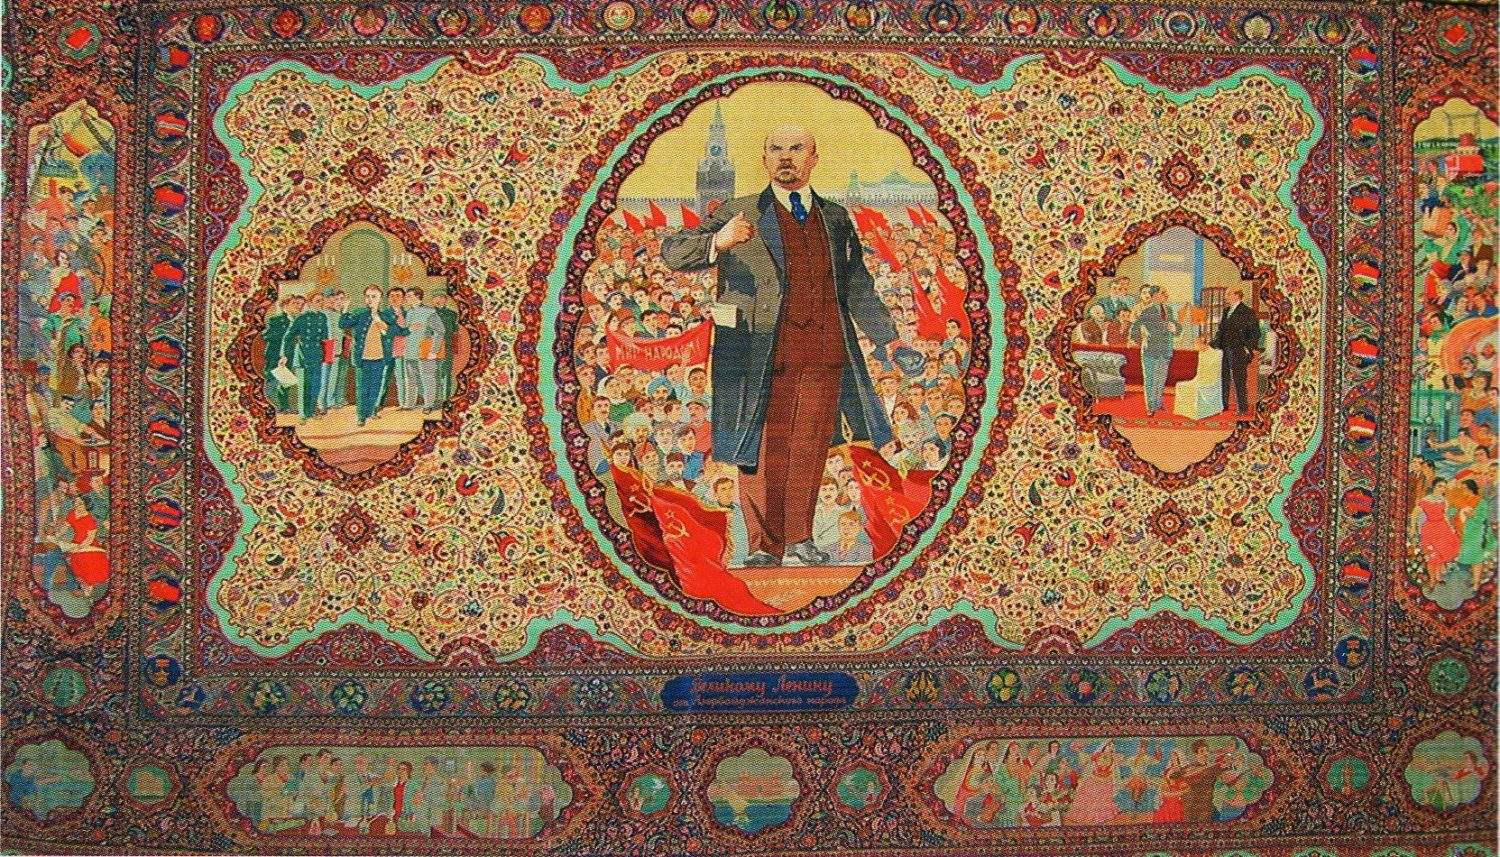 http://www.gumilev-center.ru/wp-content/uploads/2016/01/Azerbaijani_carpet_LENIN_Latif_Kerimov.jpg height=487